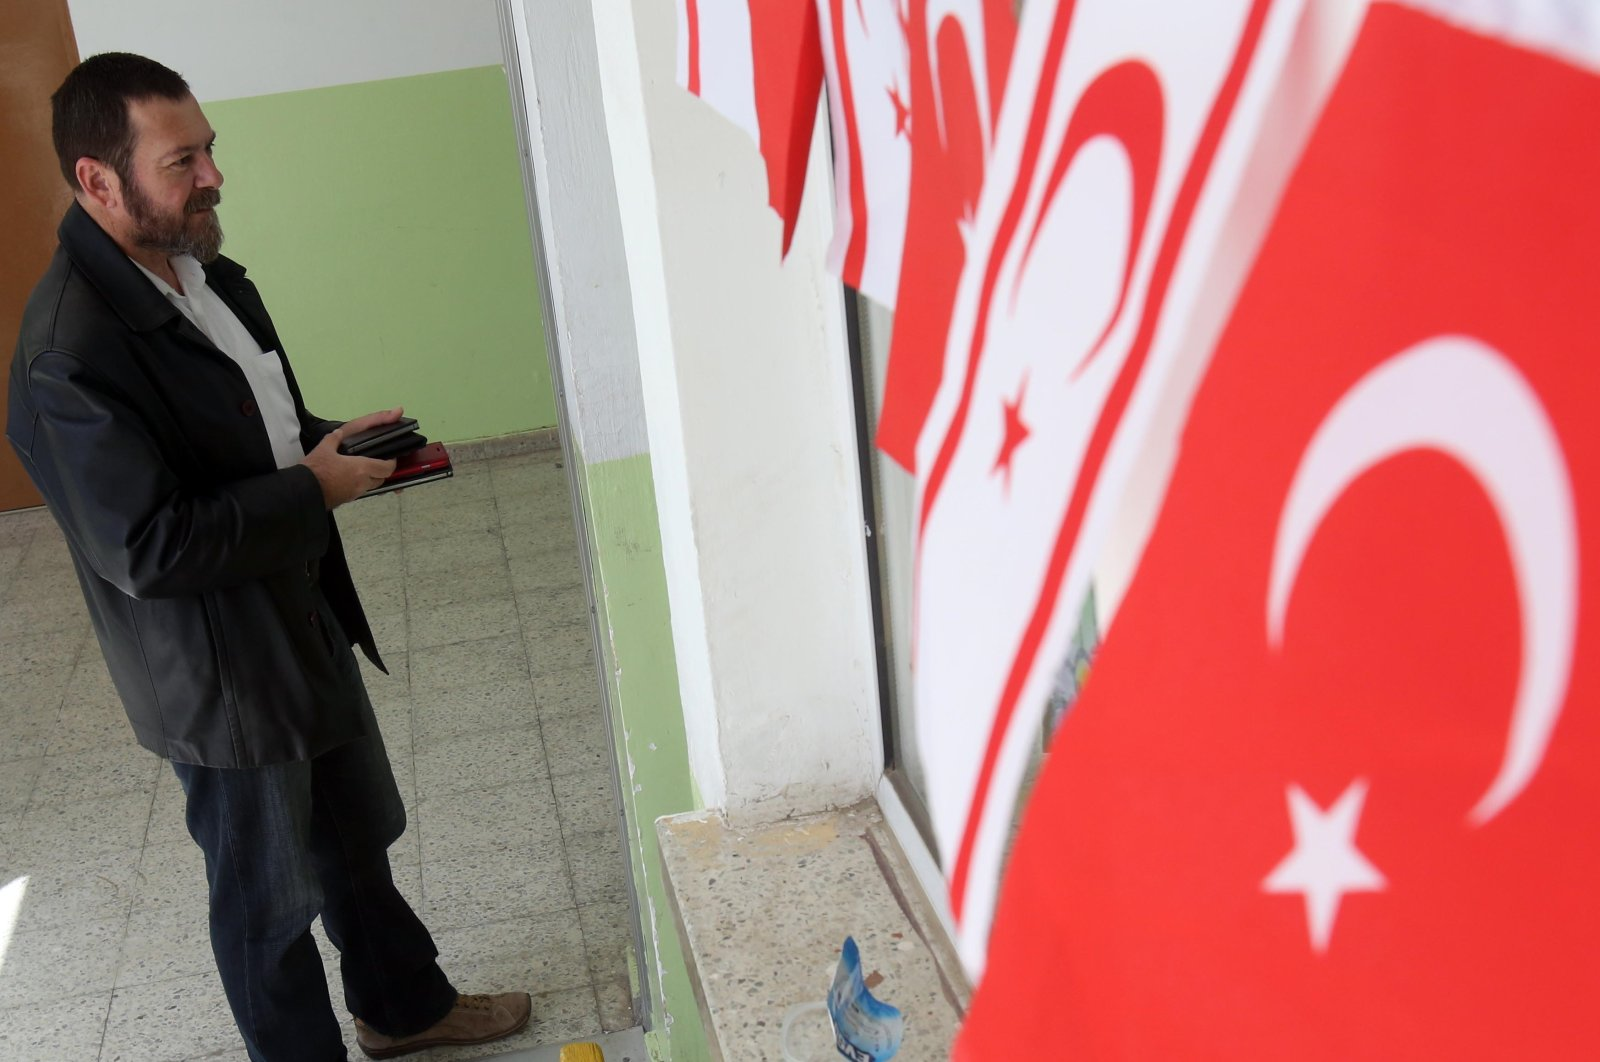 A man waits to vote outside a polling station during the presidential elections in Lefkoşa, Turkish Republic of Northern Cyprus (TRNC), April 26, 2015. (AP Photo)